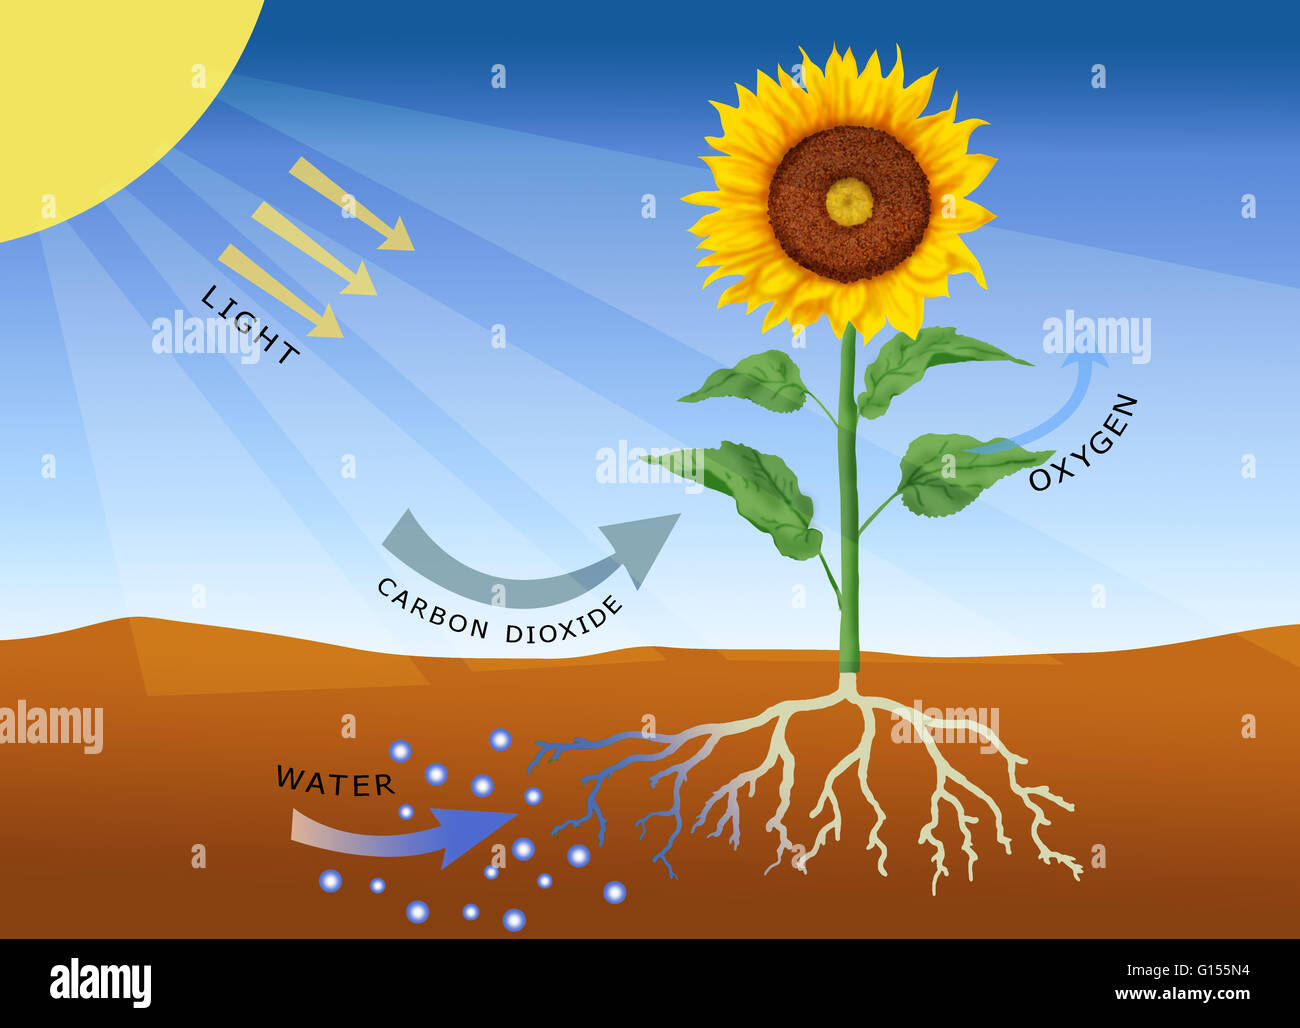 describe the process of photosynthesis essay In summary, photosynthesis is a process in which light energy is converted to chemical energy and used to produce organic compounds in plants, photosynthesis typically occurs within the chloroplasts located in plant leaves .